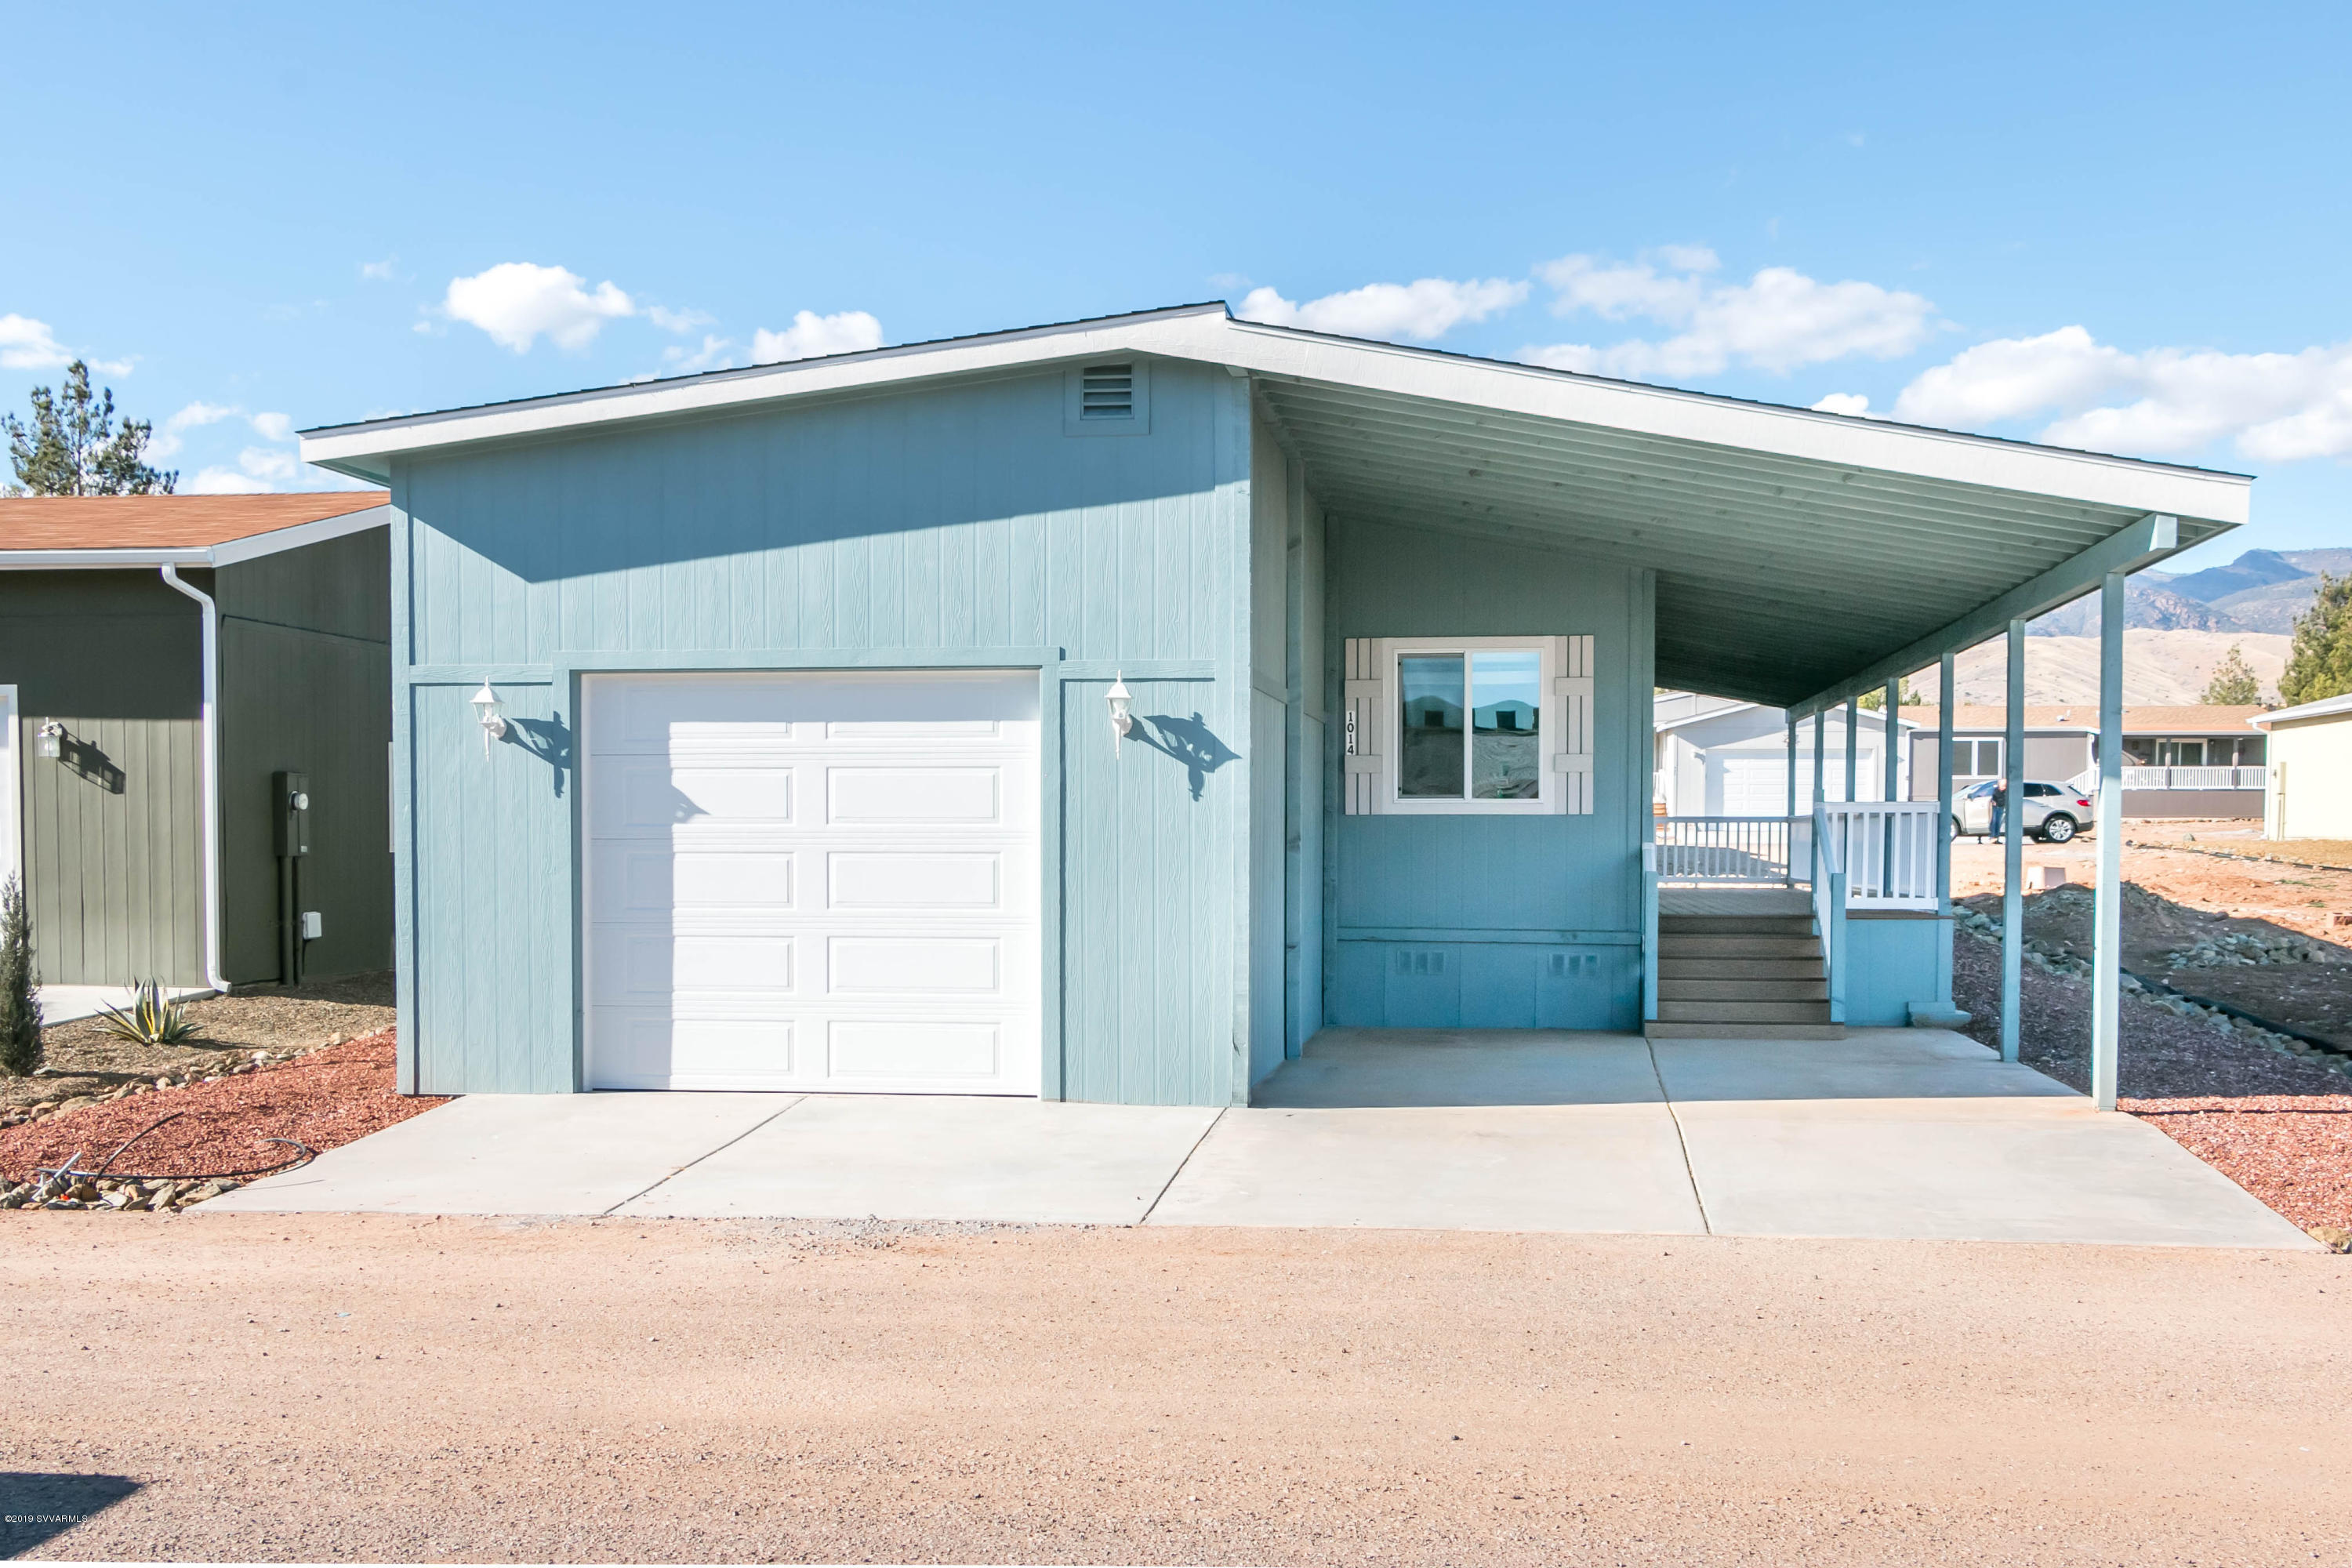 1014 Rankin Cottonwood, AZ 86326